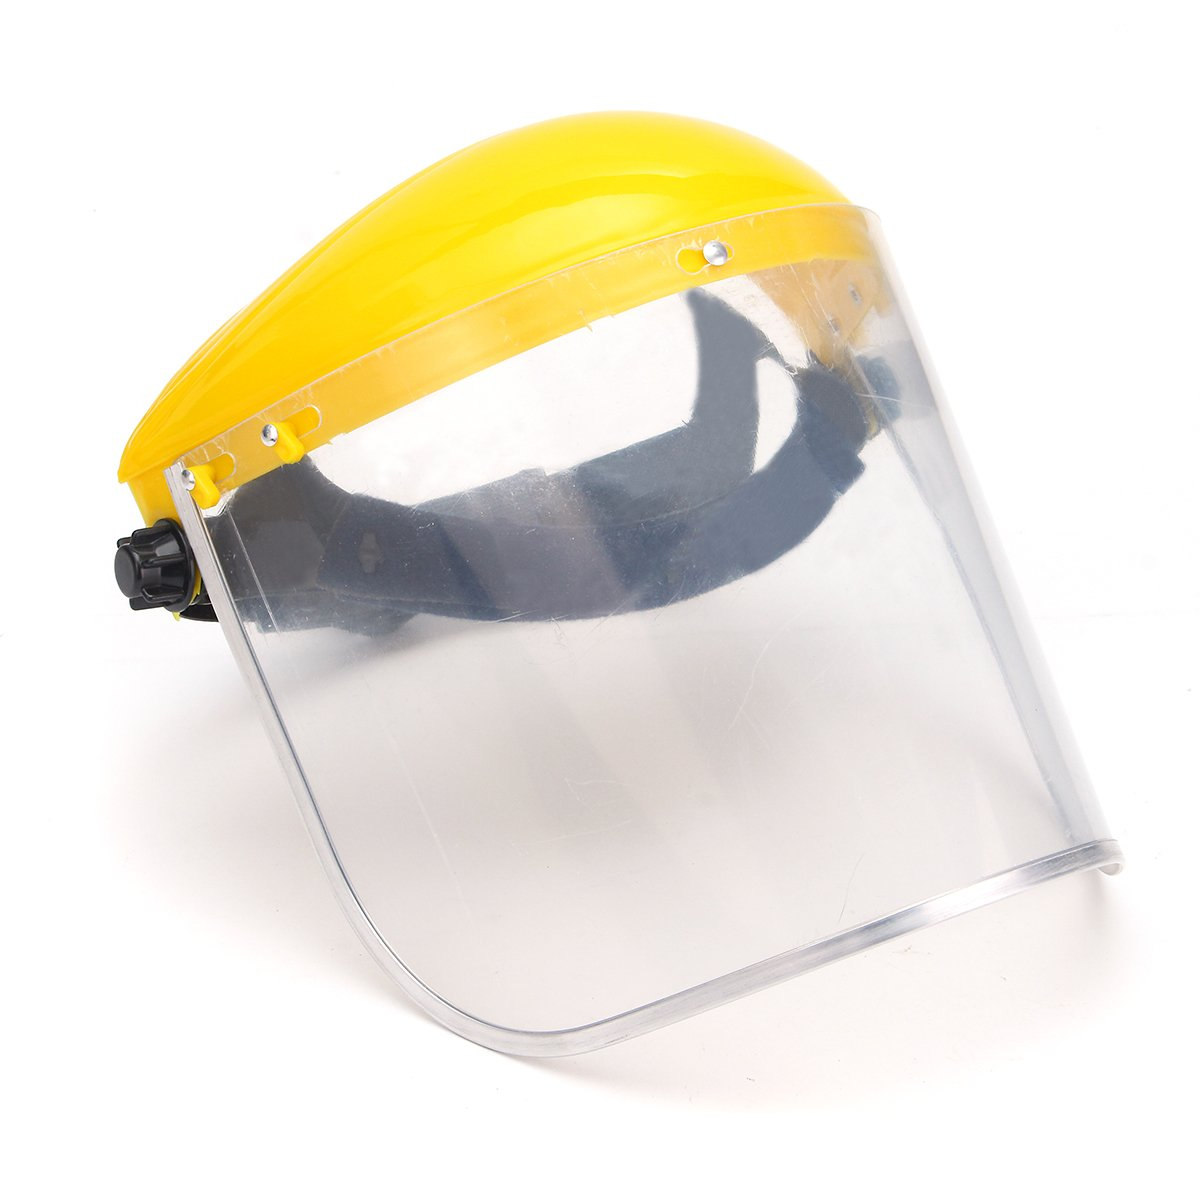 ronco n95 mask particulate respirator 20 masks/box